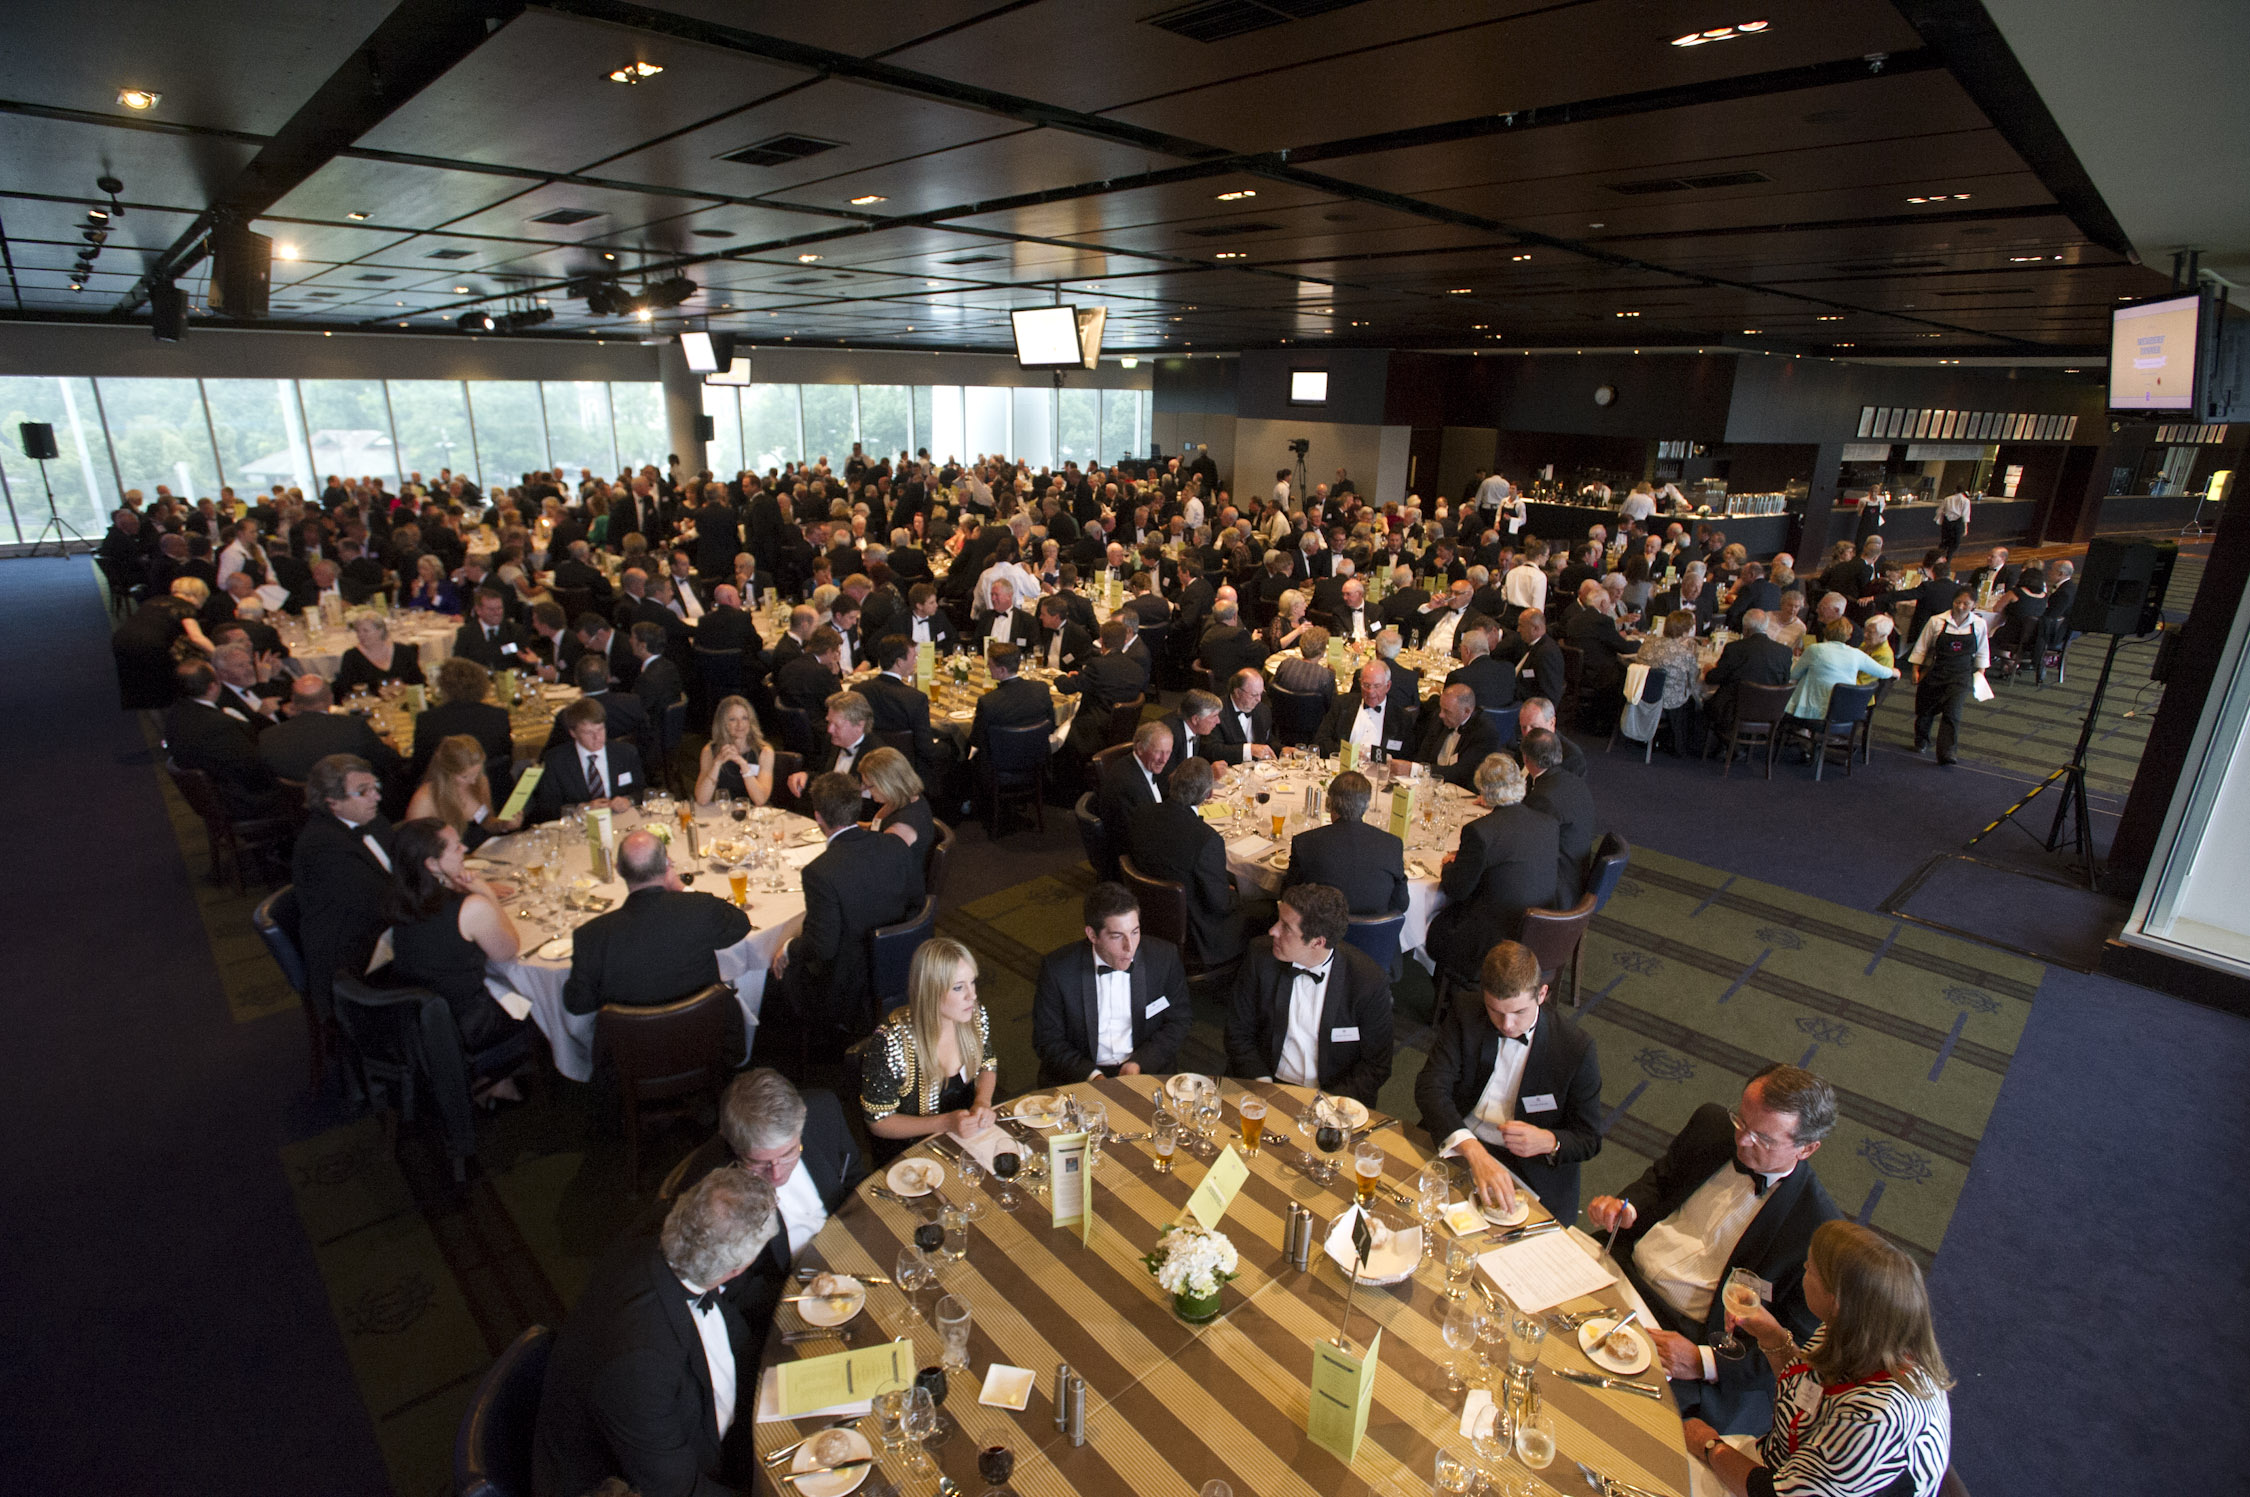 Melbourne Cricket Club Members Dining Room : mdr 8 from mcc.org.au size 2250 x 1497 jpeg 713kB